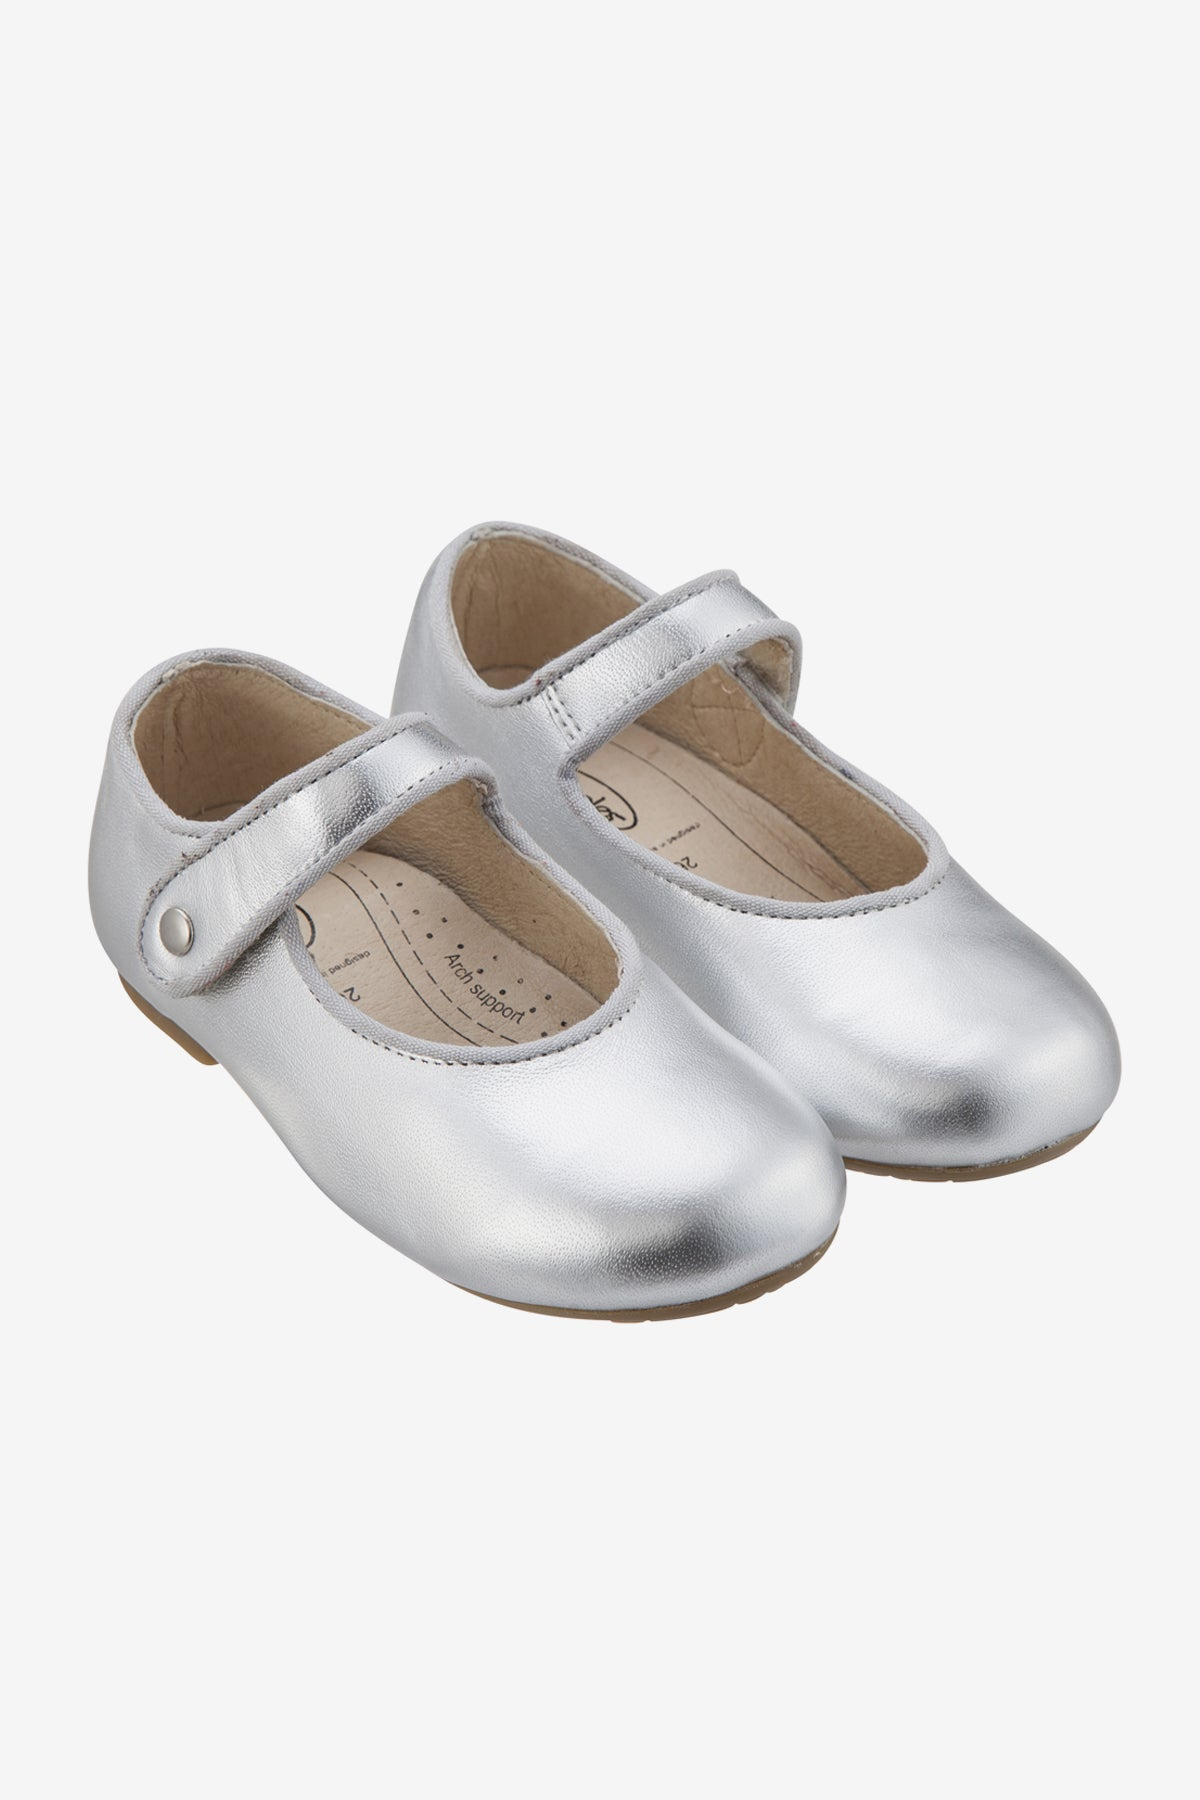 Old Soles Lady Jane Shoe Silver Mini Ruby